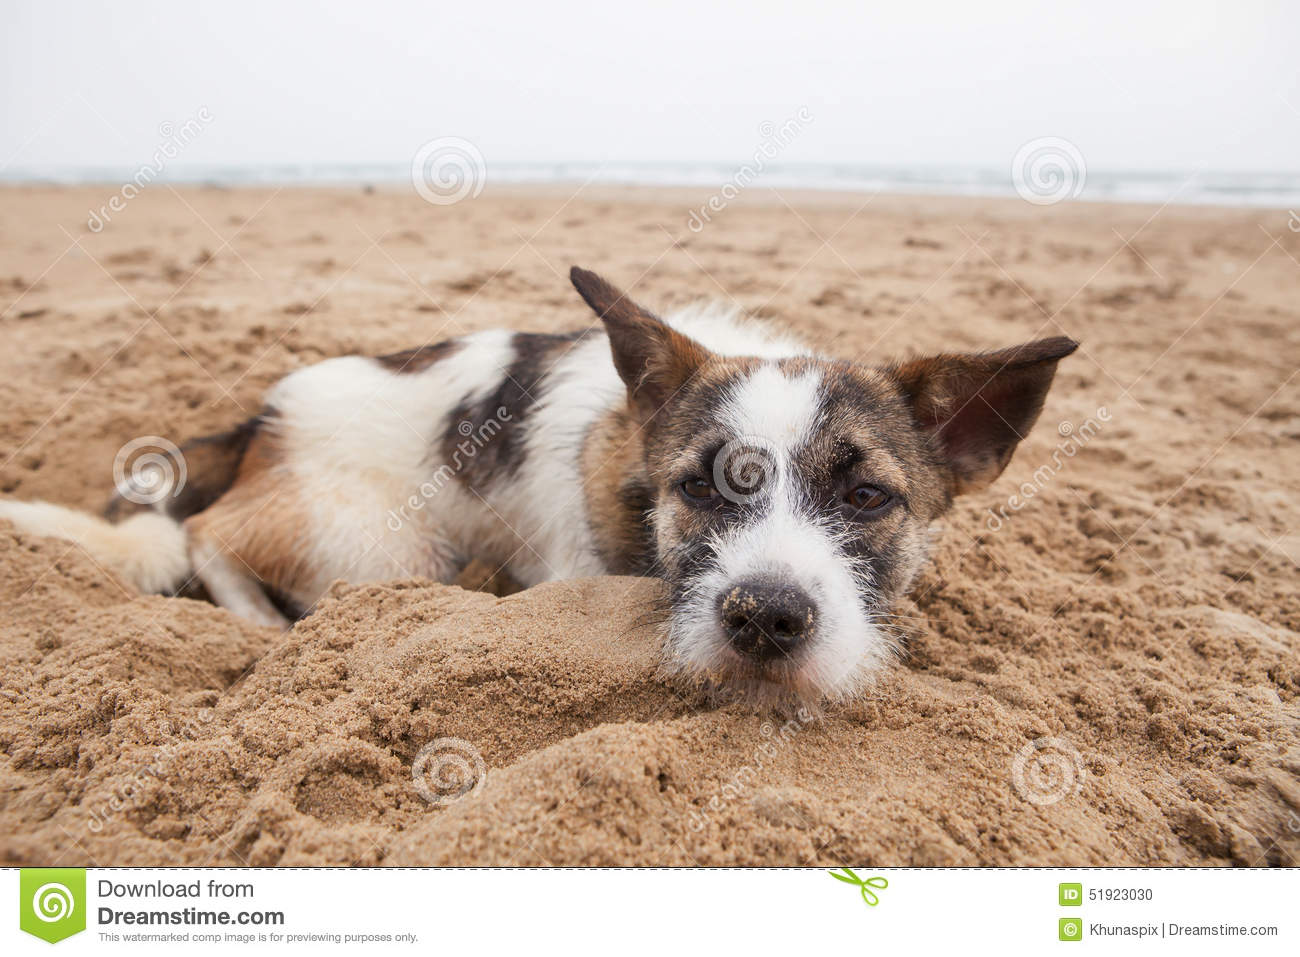 Sorrow face of homeless dog lying on sand beach with lonely feel